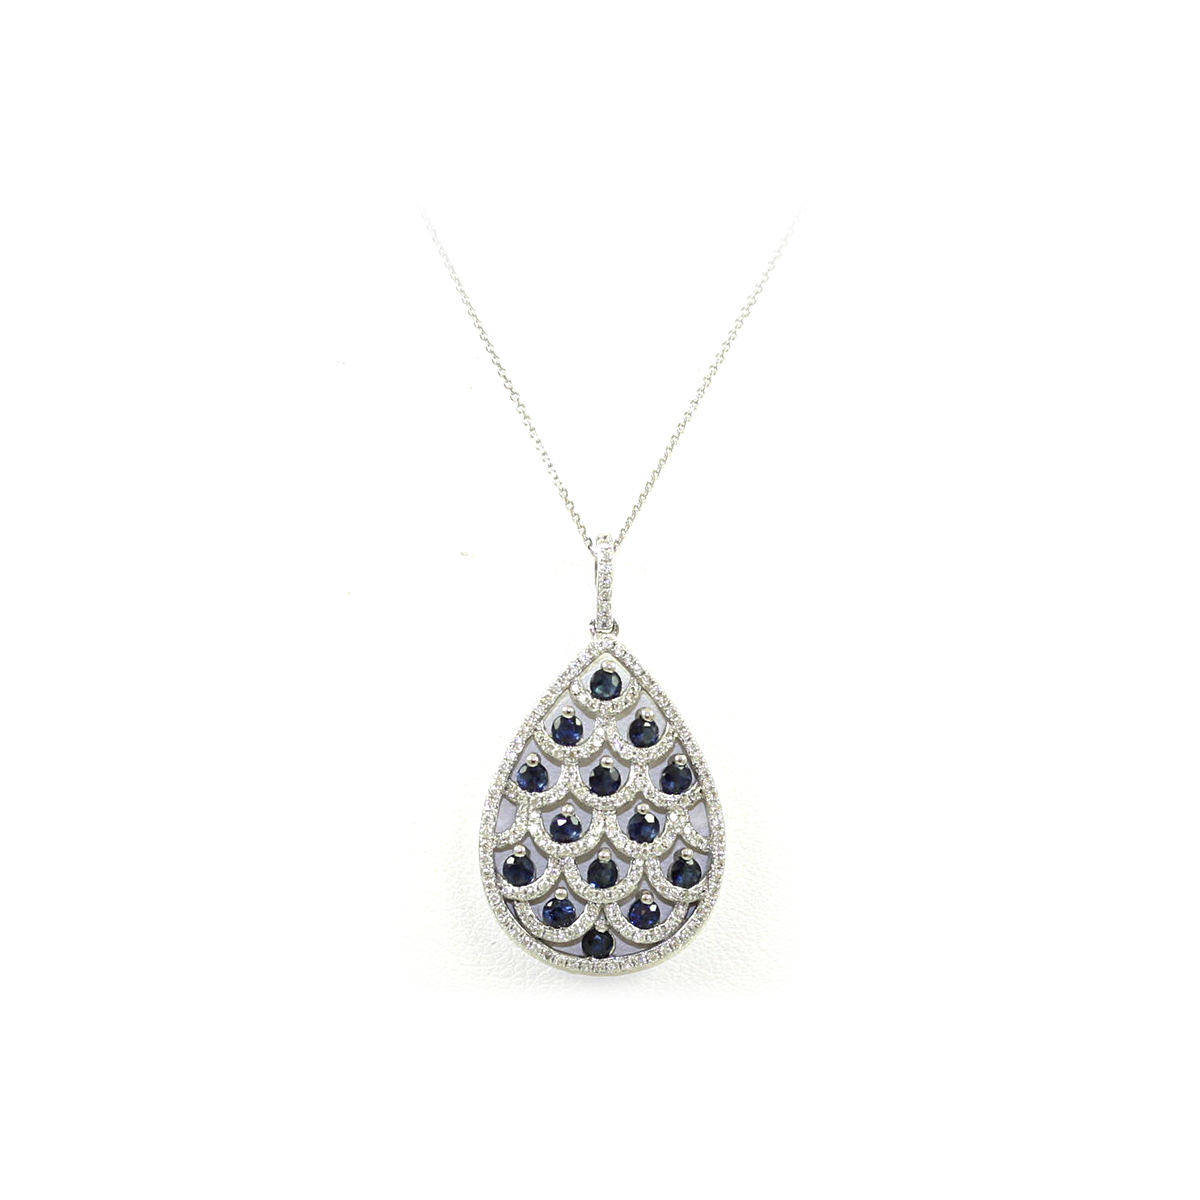 14 Karat White Gold Sapphire and Diamond Teardrop Shaped Pendant Necklace